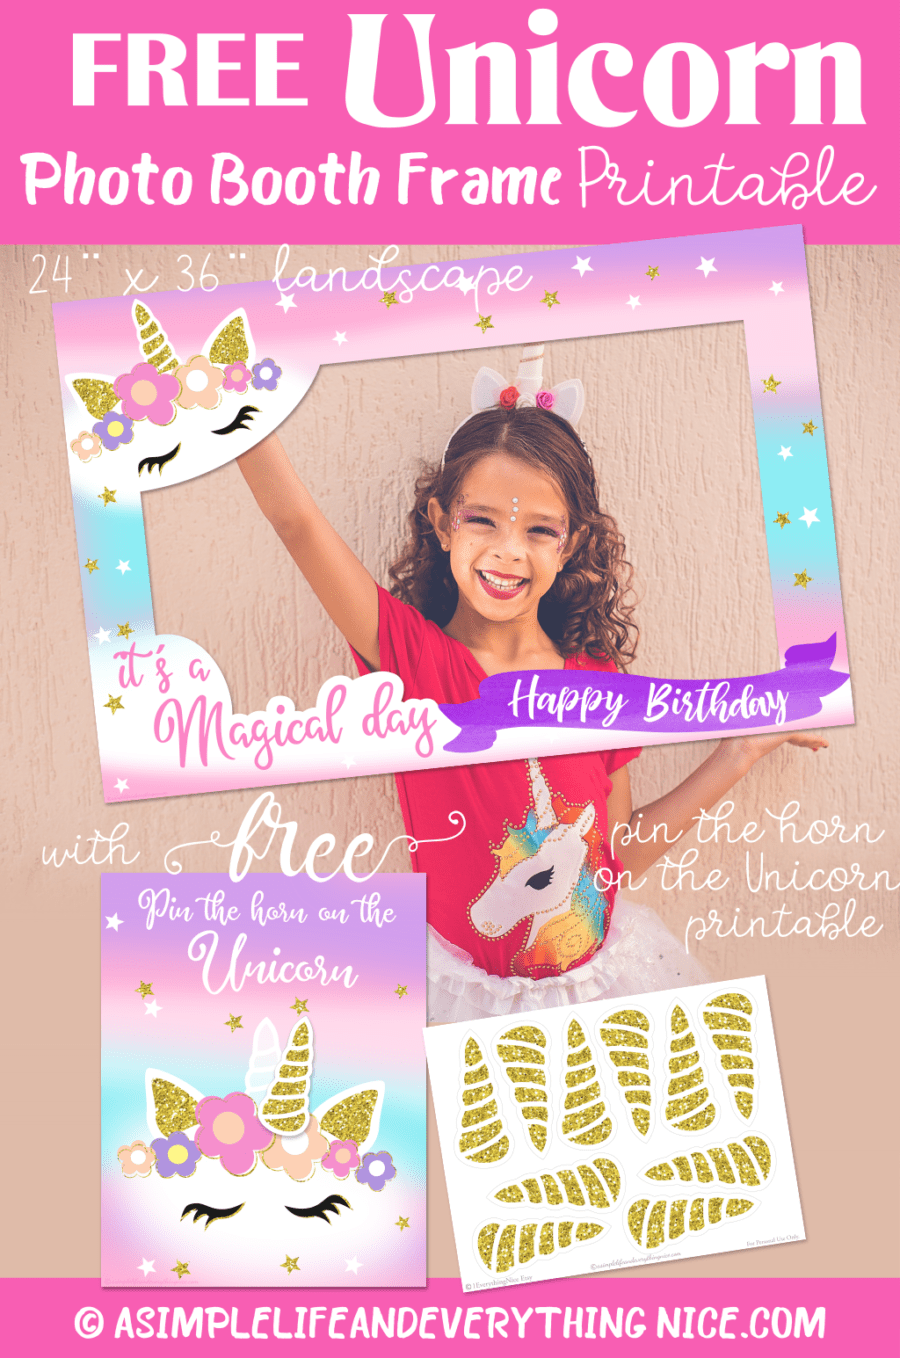 photograph about Selfie Station Sign Free Printable named Totally free Unicorn Picture Booth Body and Pin the Horn upon the